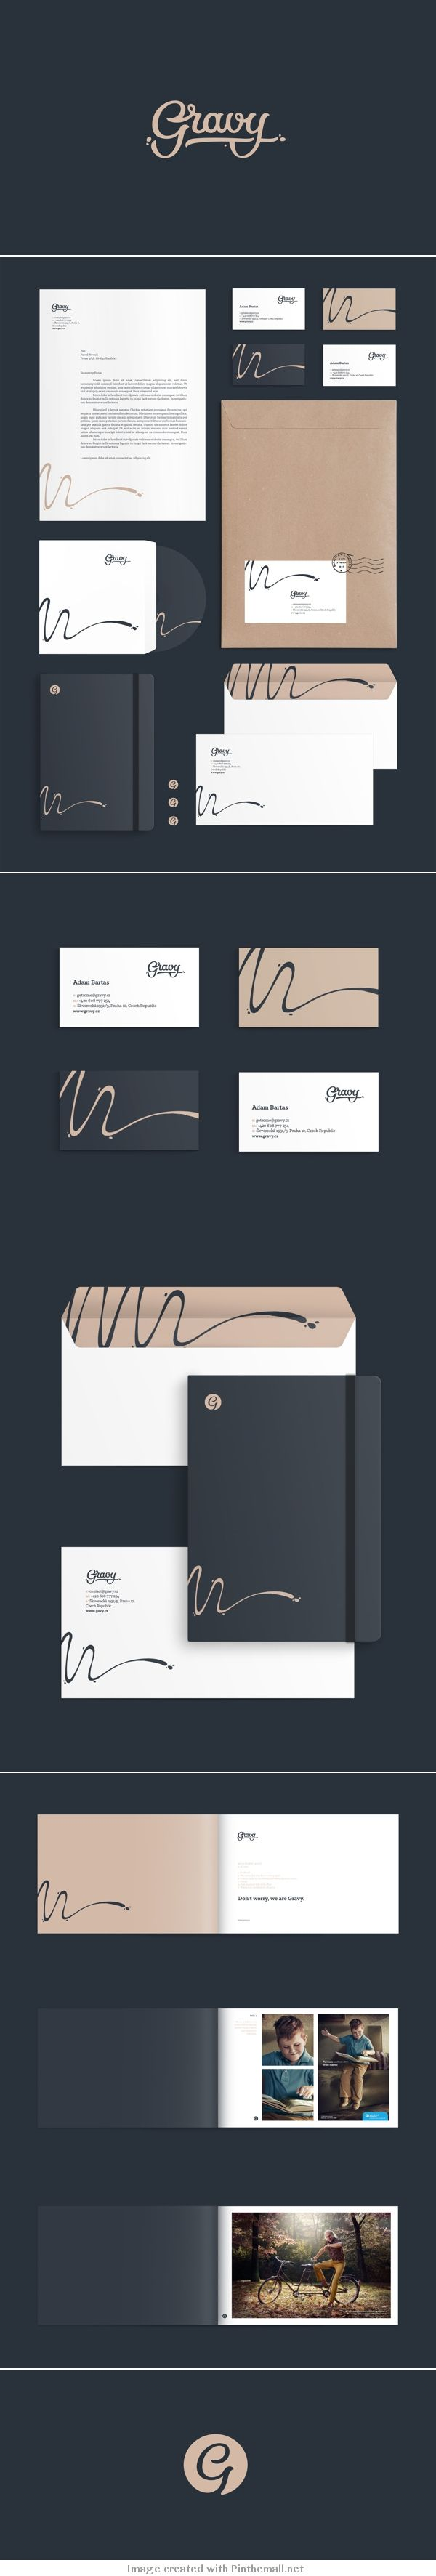 Gravy :: Visual identity